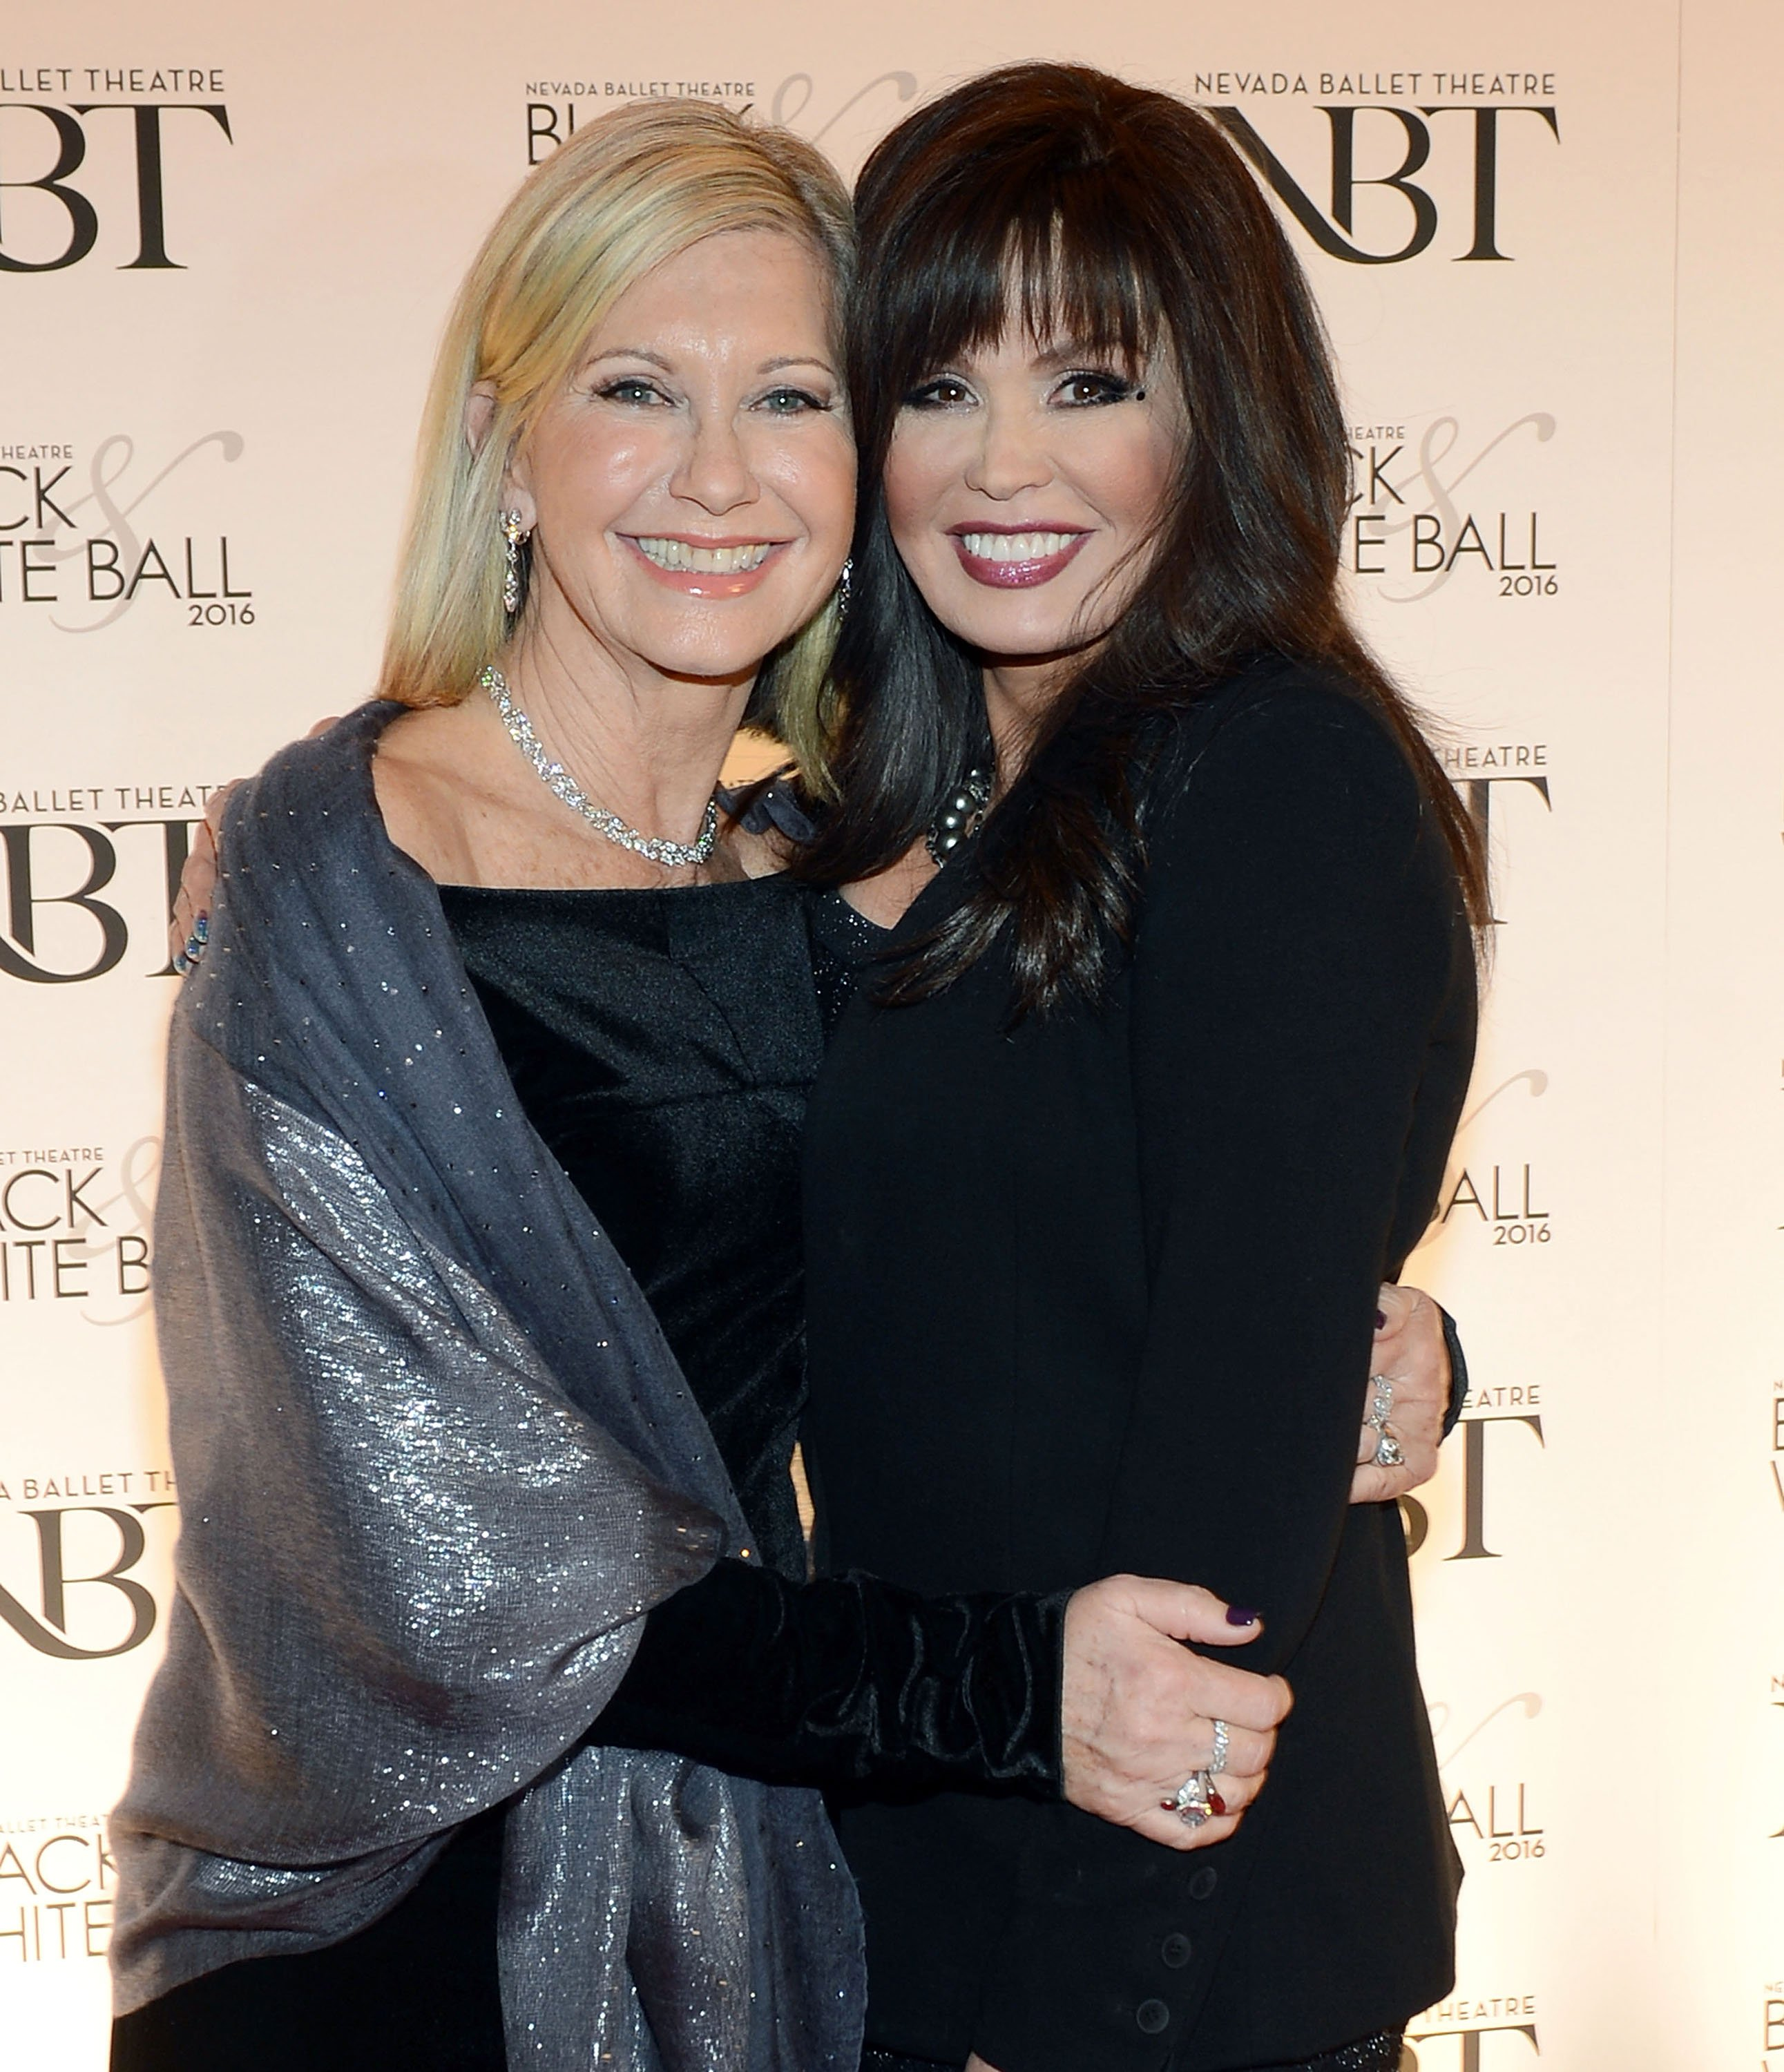 Marie Osmond spotted at an event with Olivia Newton John (left) in Las Vegas, January, 2016. | Photo: Getty Images.